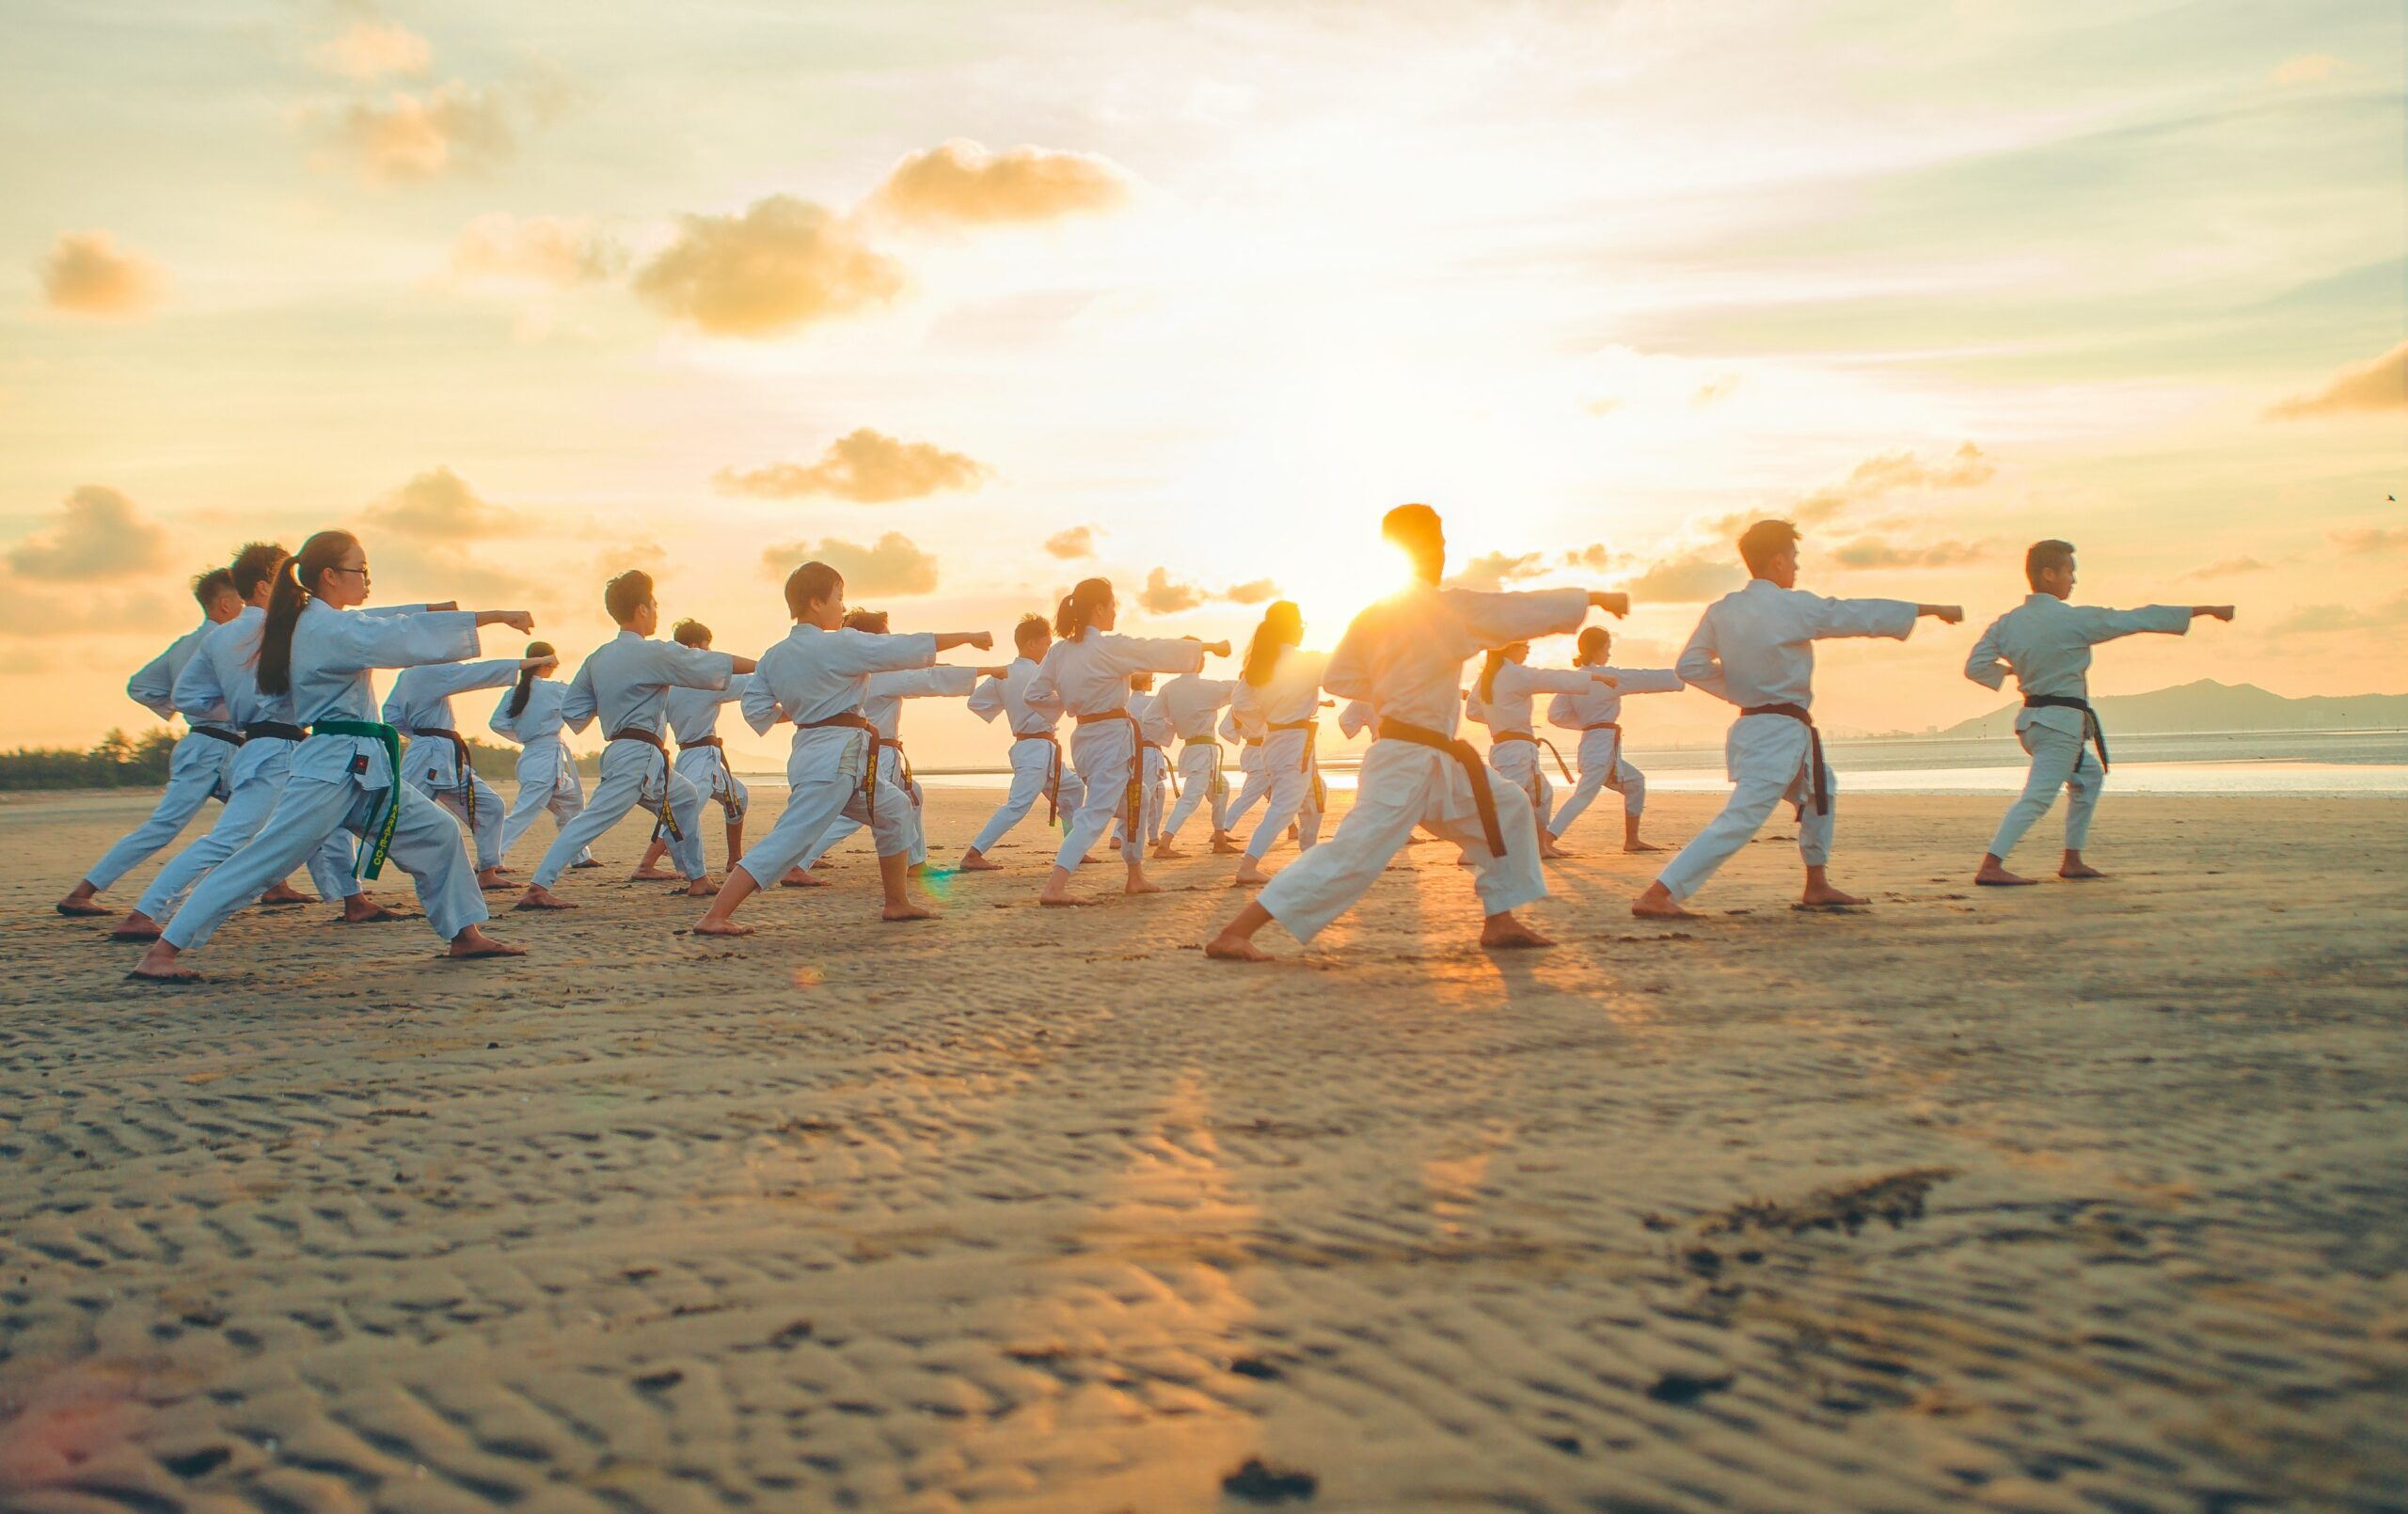 a group of people doing karate on a sandy beach at sunrise